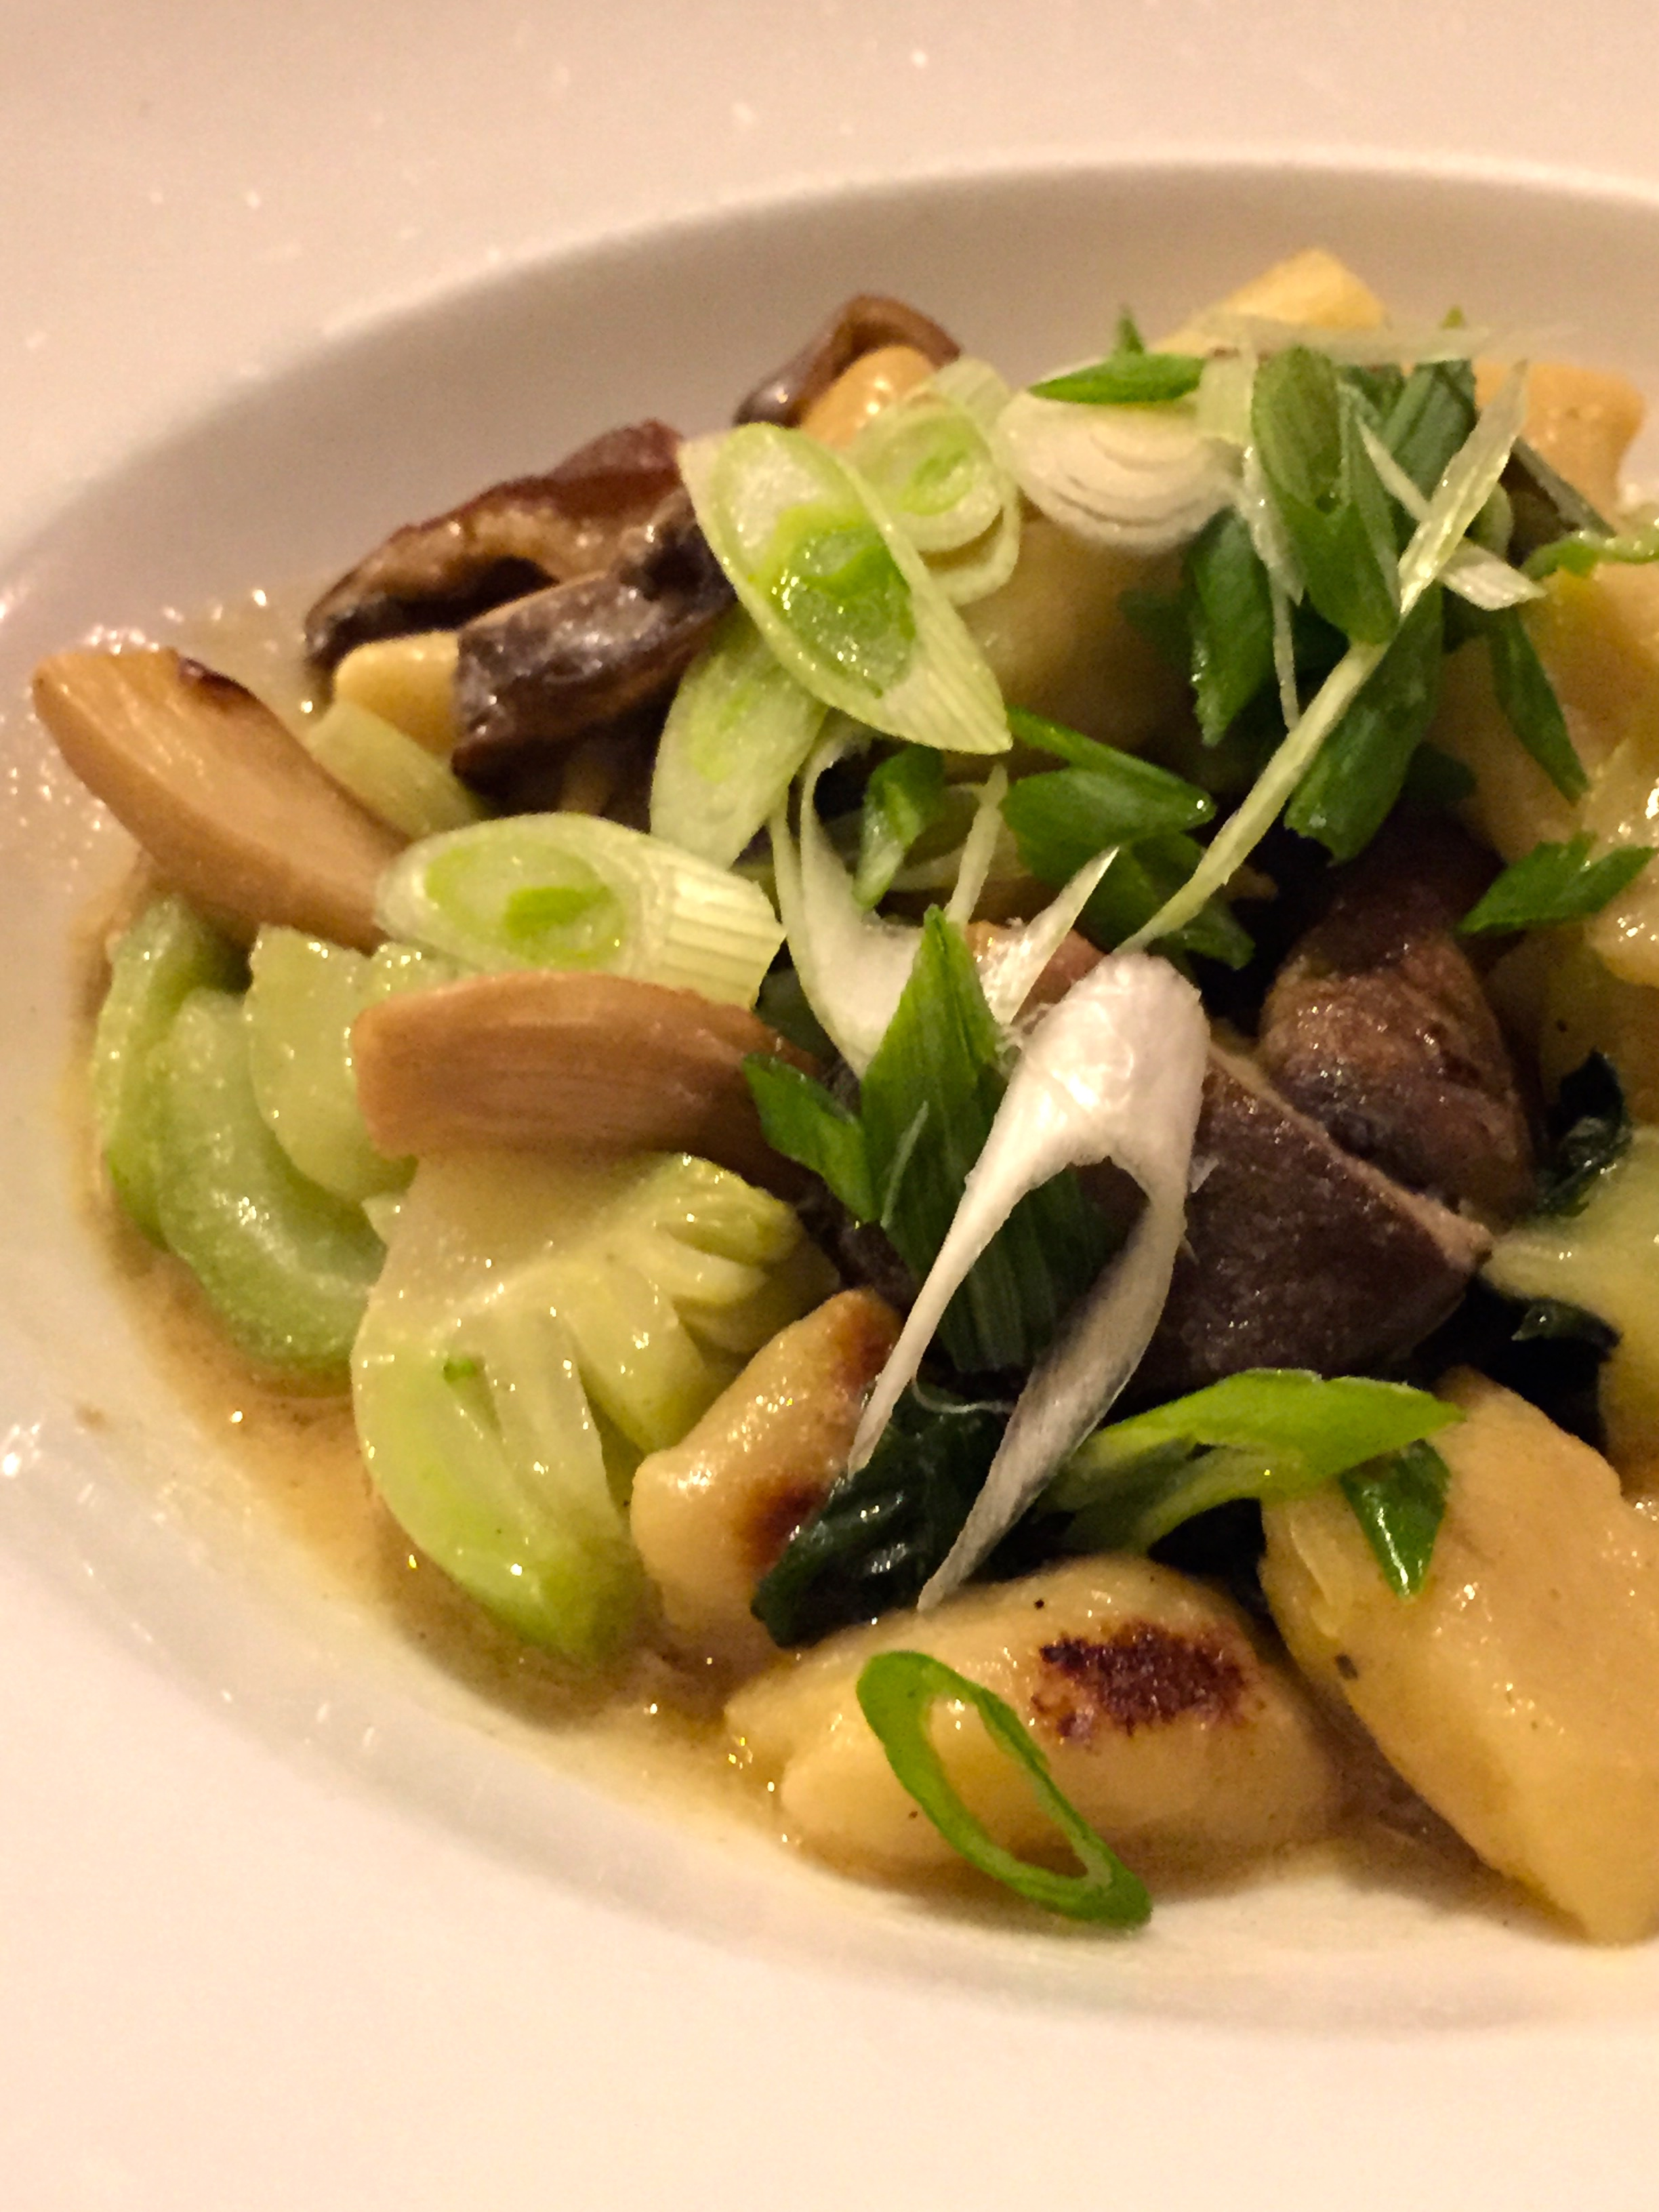 Green Zebra -  Toasted Sesame Gnocchi with baby bok choy, wild mushrooms, and Chinese mustard.